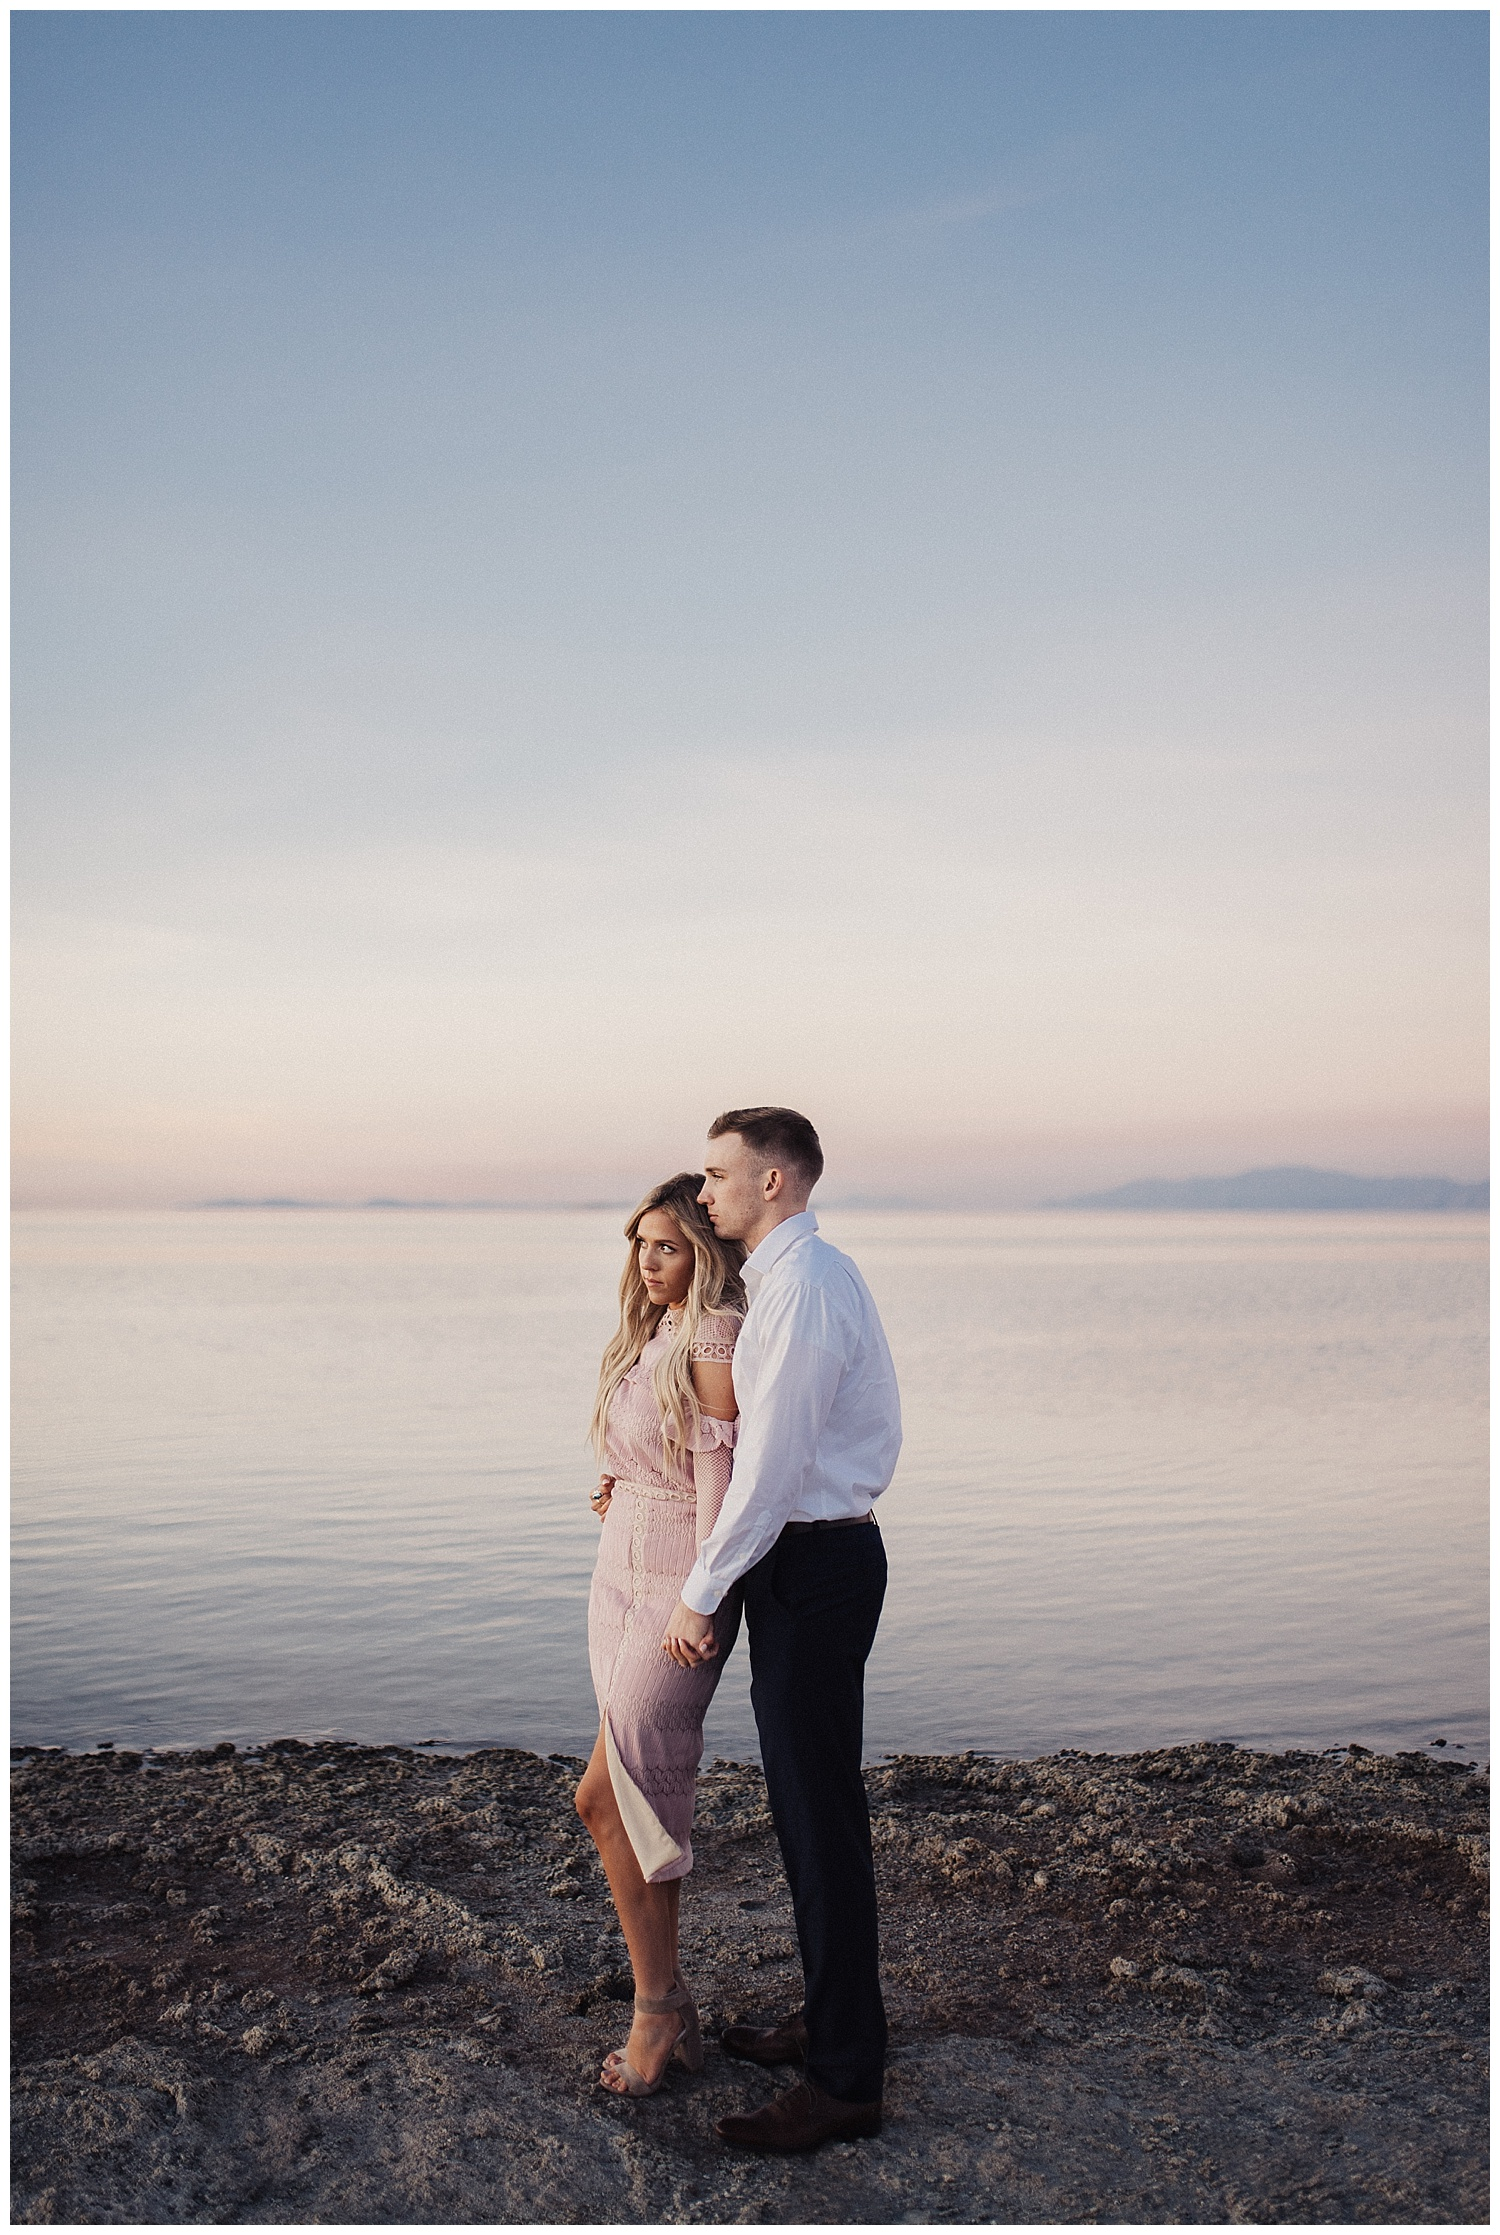 Sunset engagements session at the beach